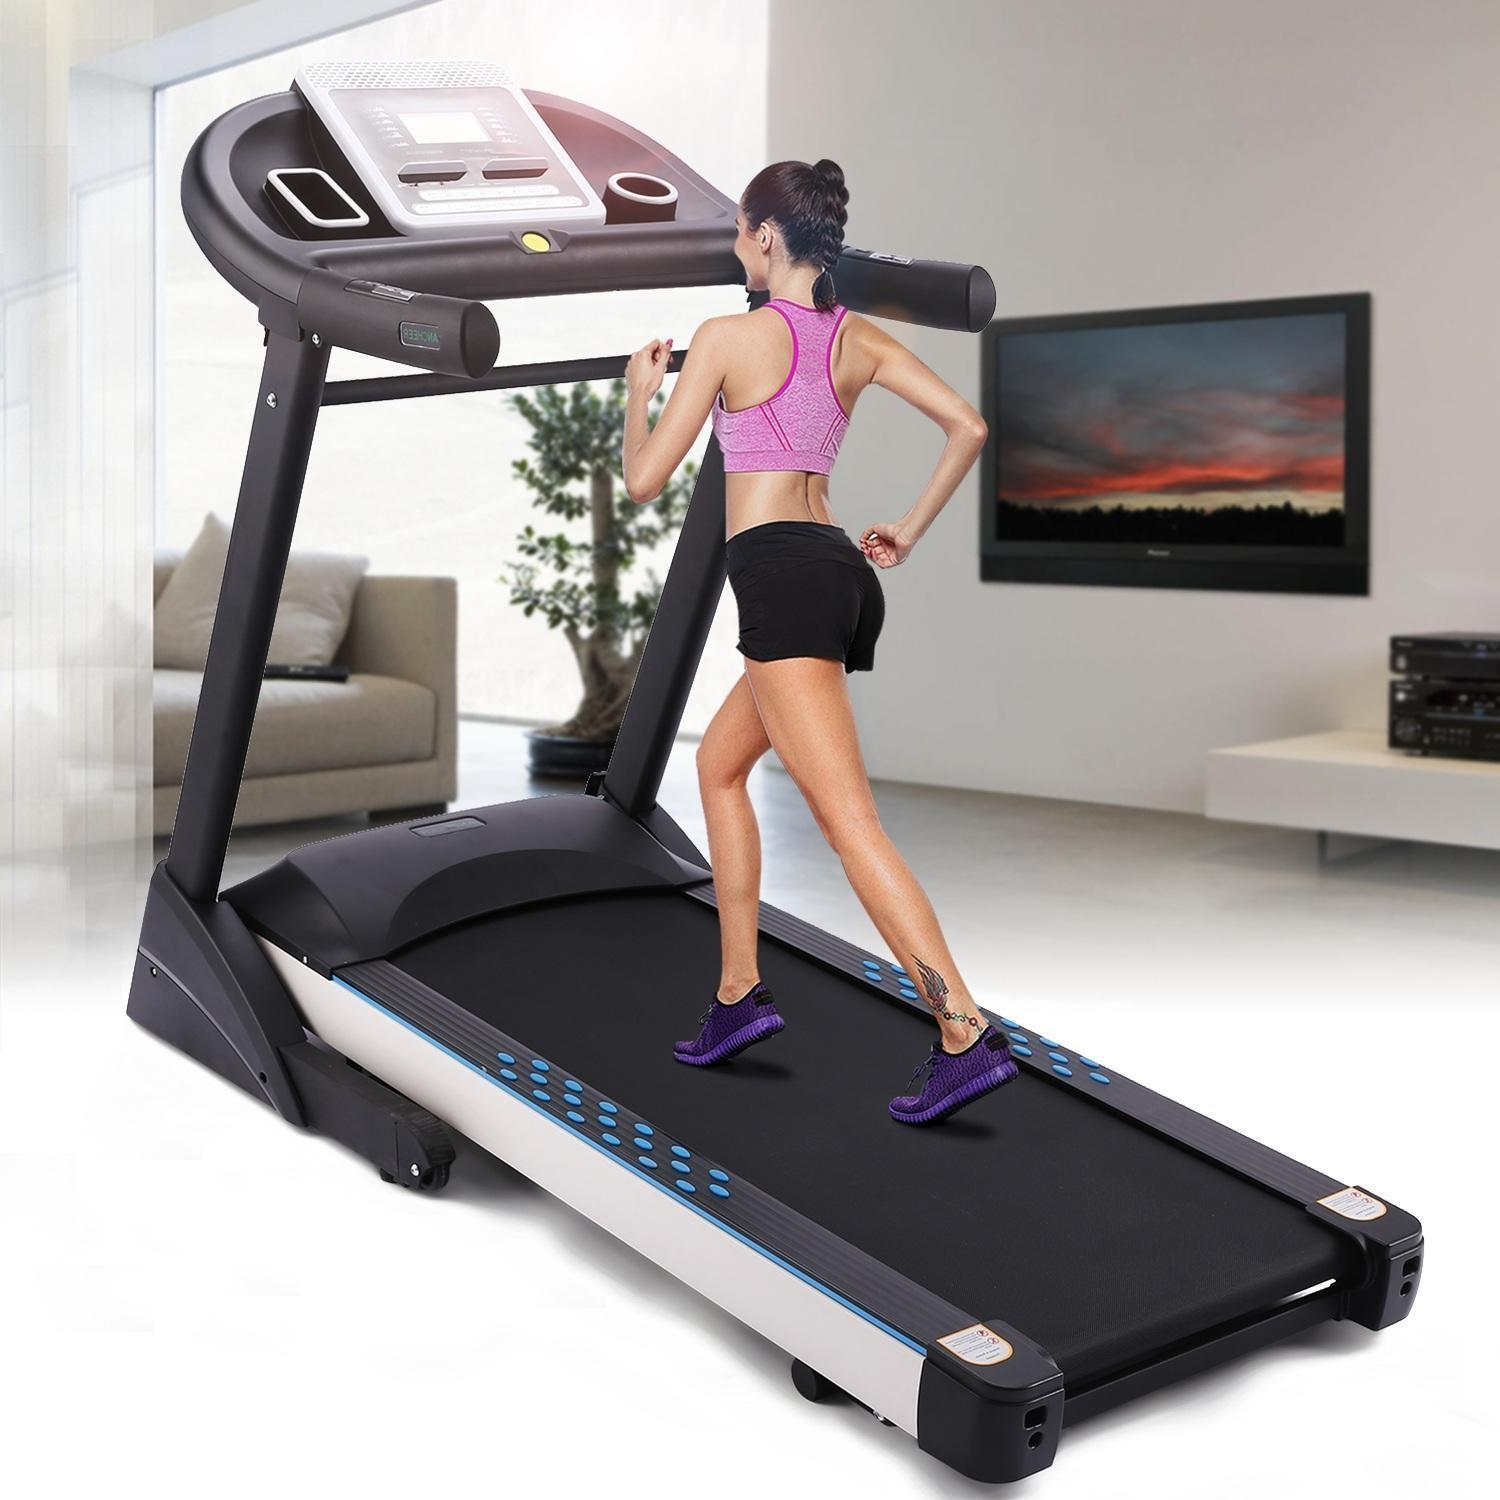 Clearance! Ancheer 3.0HP Treadmill Fitness Folding Electric Treadmill With Mobile Phone Holder and 5inch HD Screen Exercise Equipment Walking Running Machine Gym Home